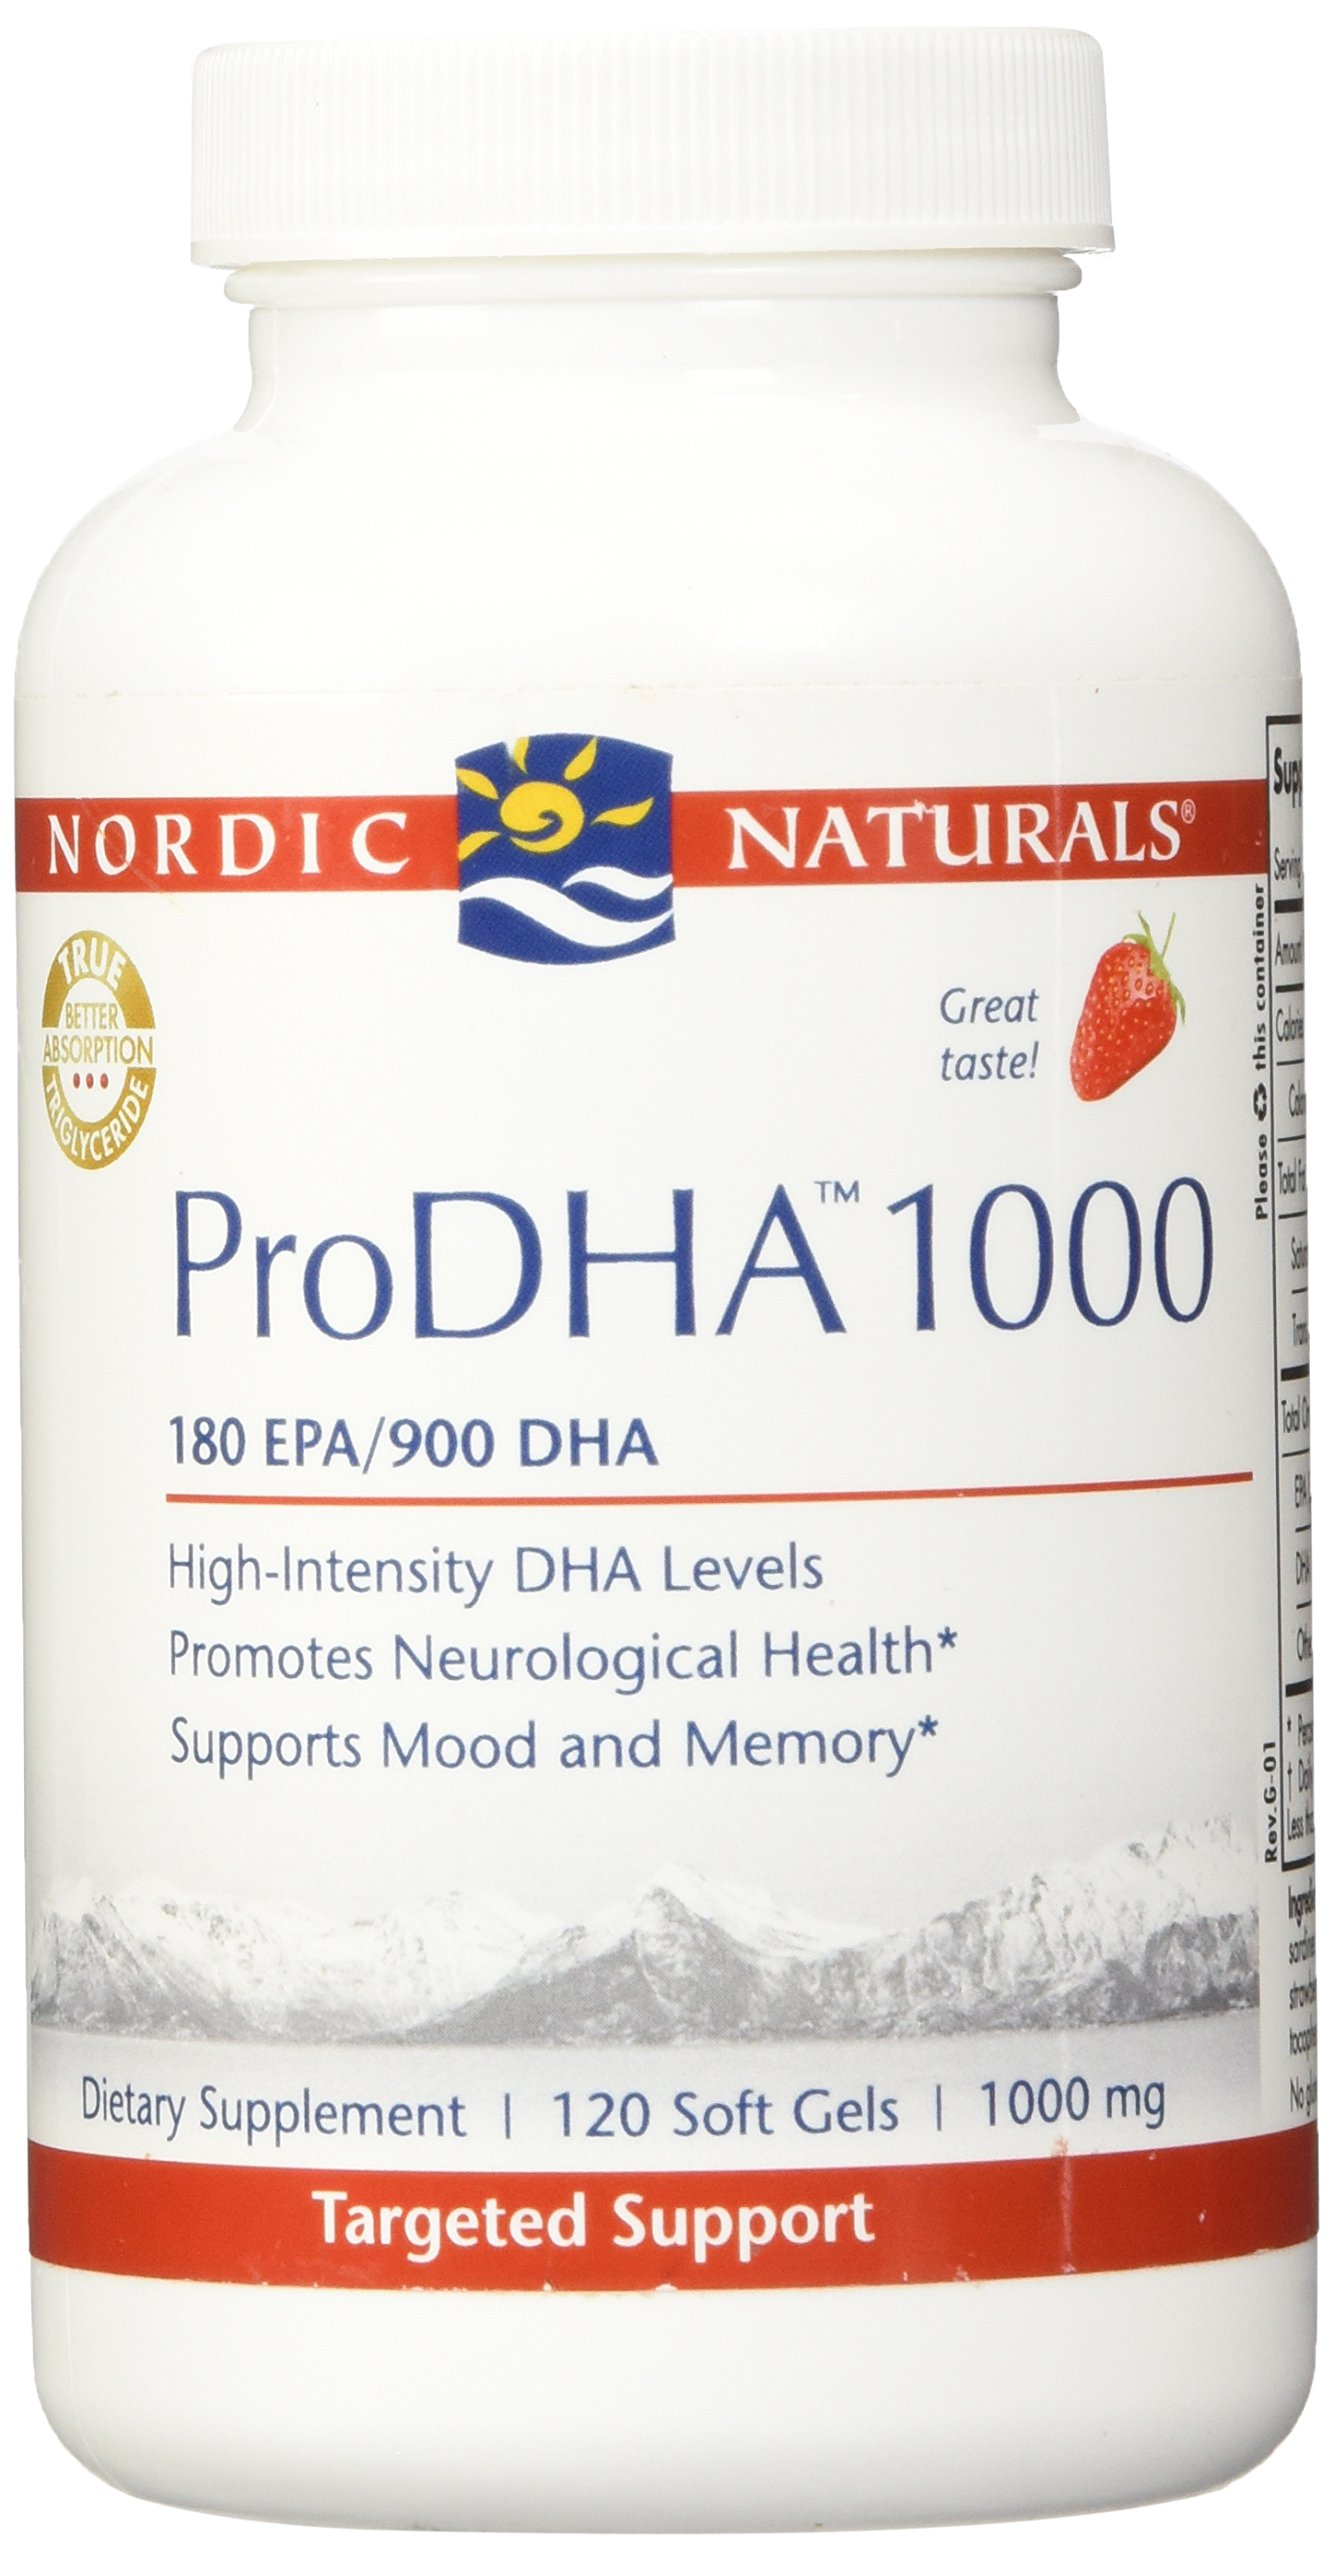 Nordic Naturals Pro DHA 1000, Strawberry, 120 Count by Nordic Naturals